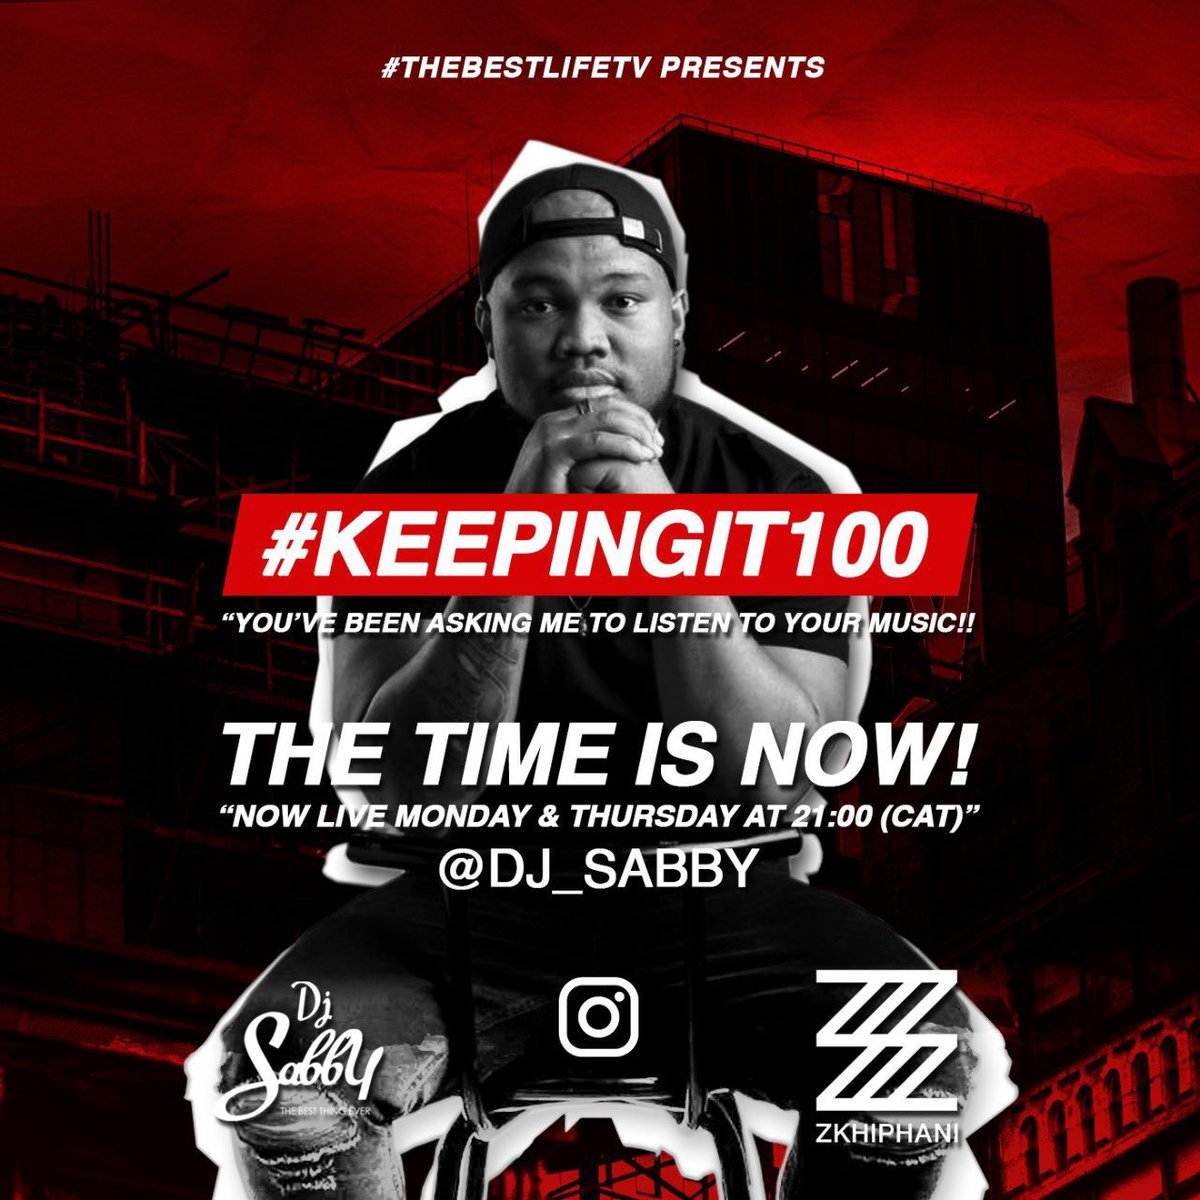 #KeepingIt100 Thursday!!!   #Beat makers today it's all about you. Musicians are also welcome but beat makers are the VIP's! Let's connect 21:00 (CAT) on my IG pic.twitter.com/1ogeyGfGjl